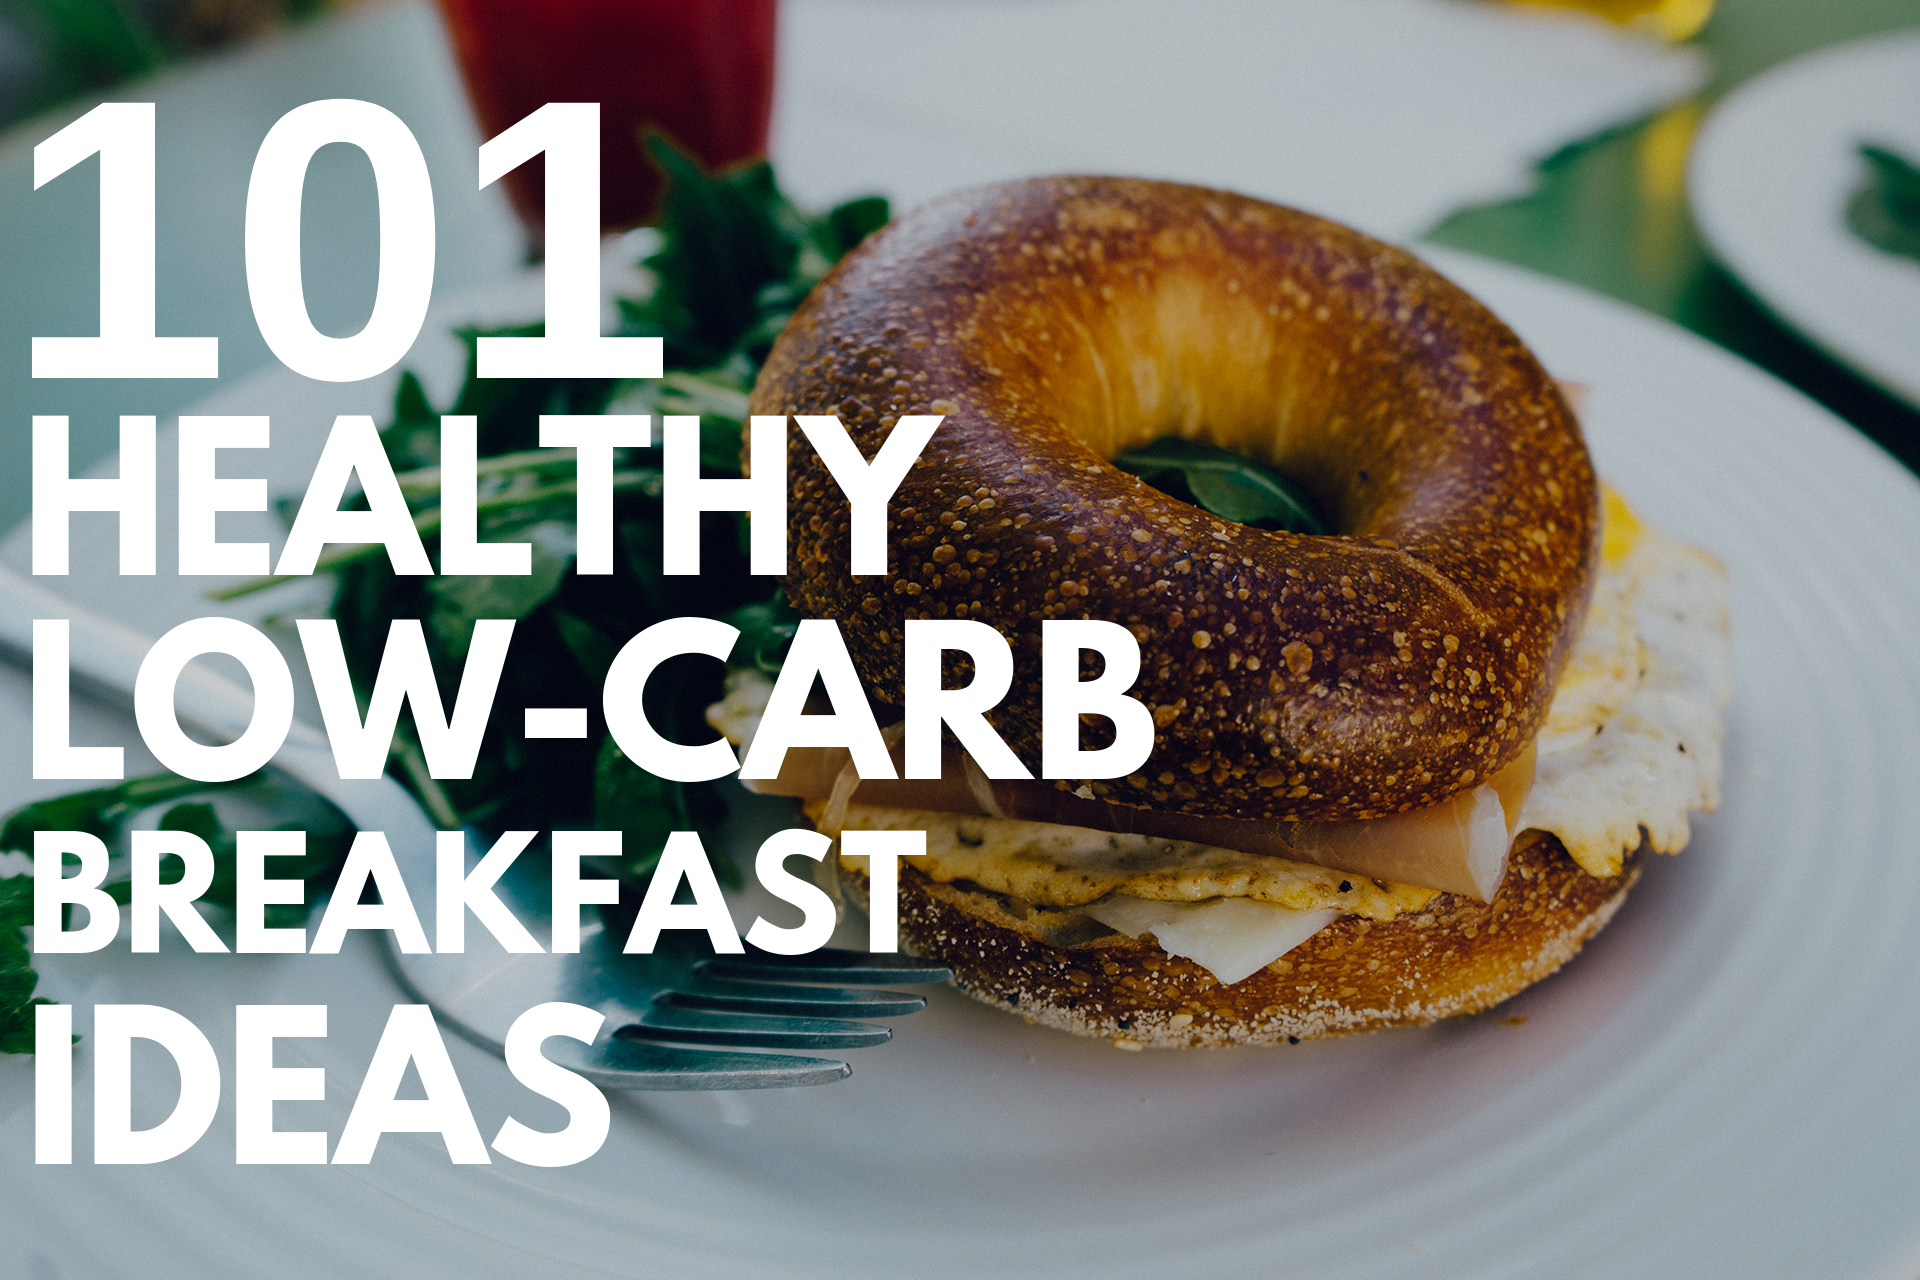 Thumbnail for 101 Healthy Low-Carb Breakfast Ideas (that taste delicious!)